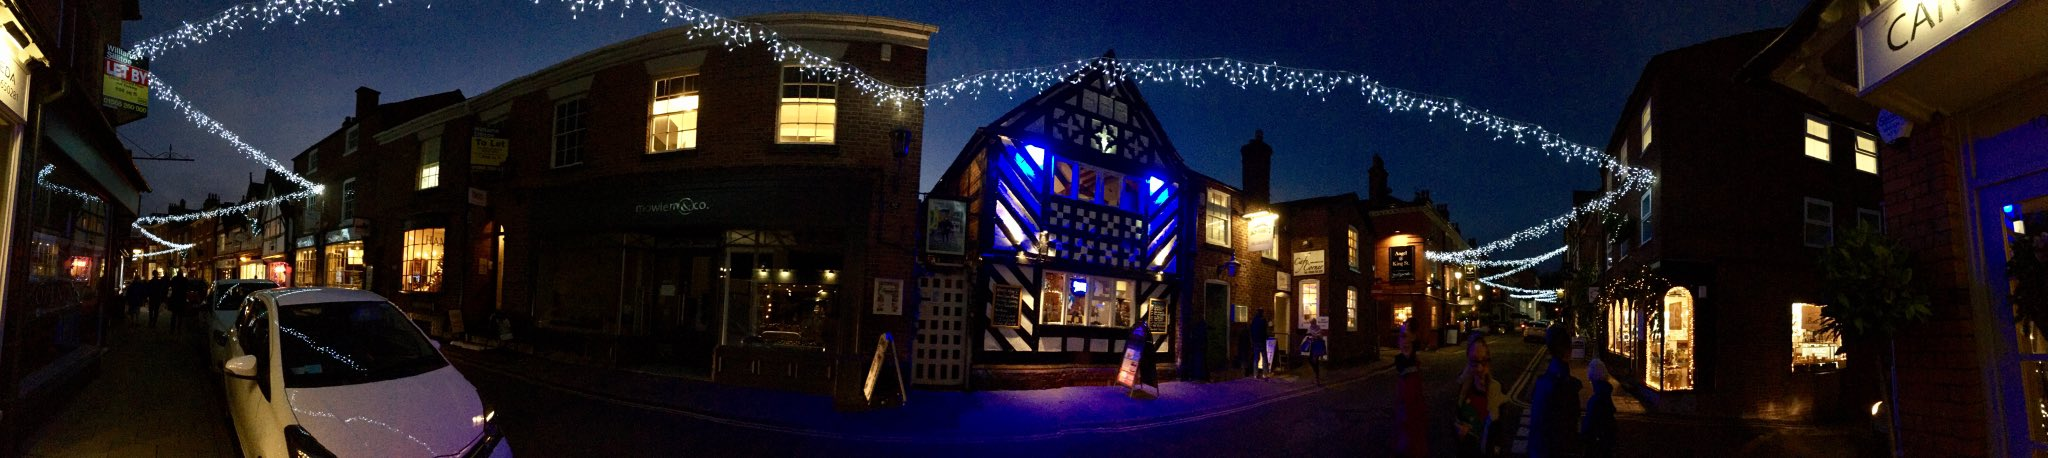 A #Christmas panorama #Knutsford #Cheshire https://t.co/SAOy3DB838